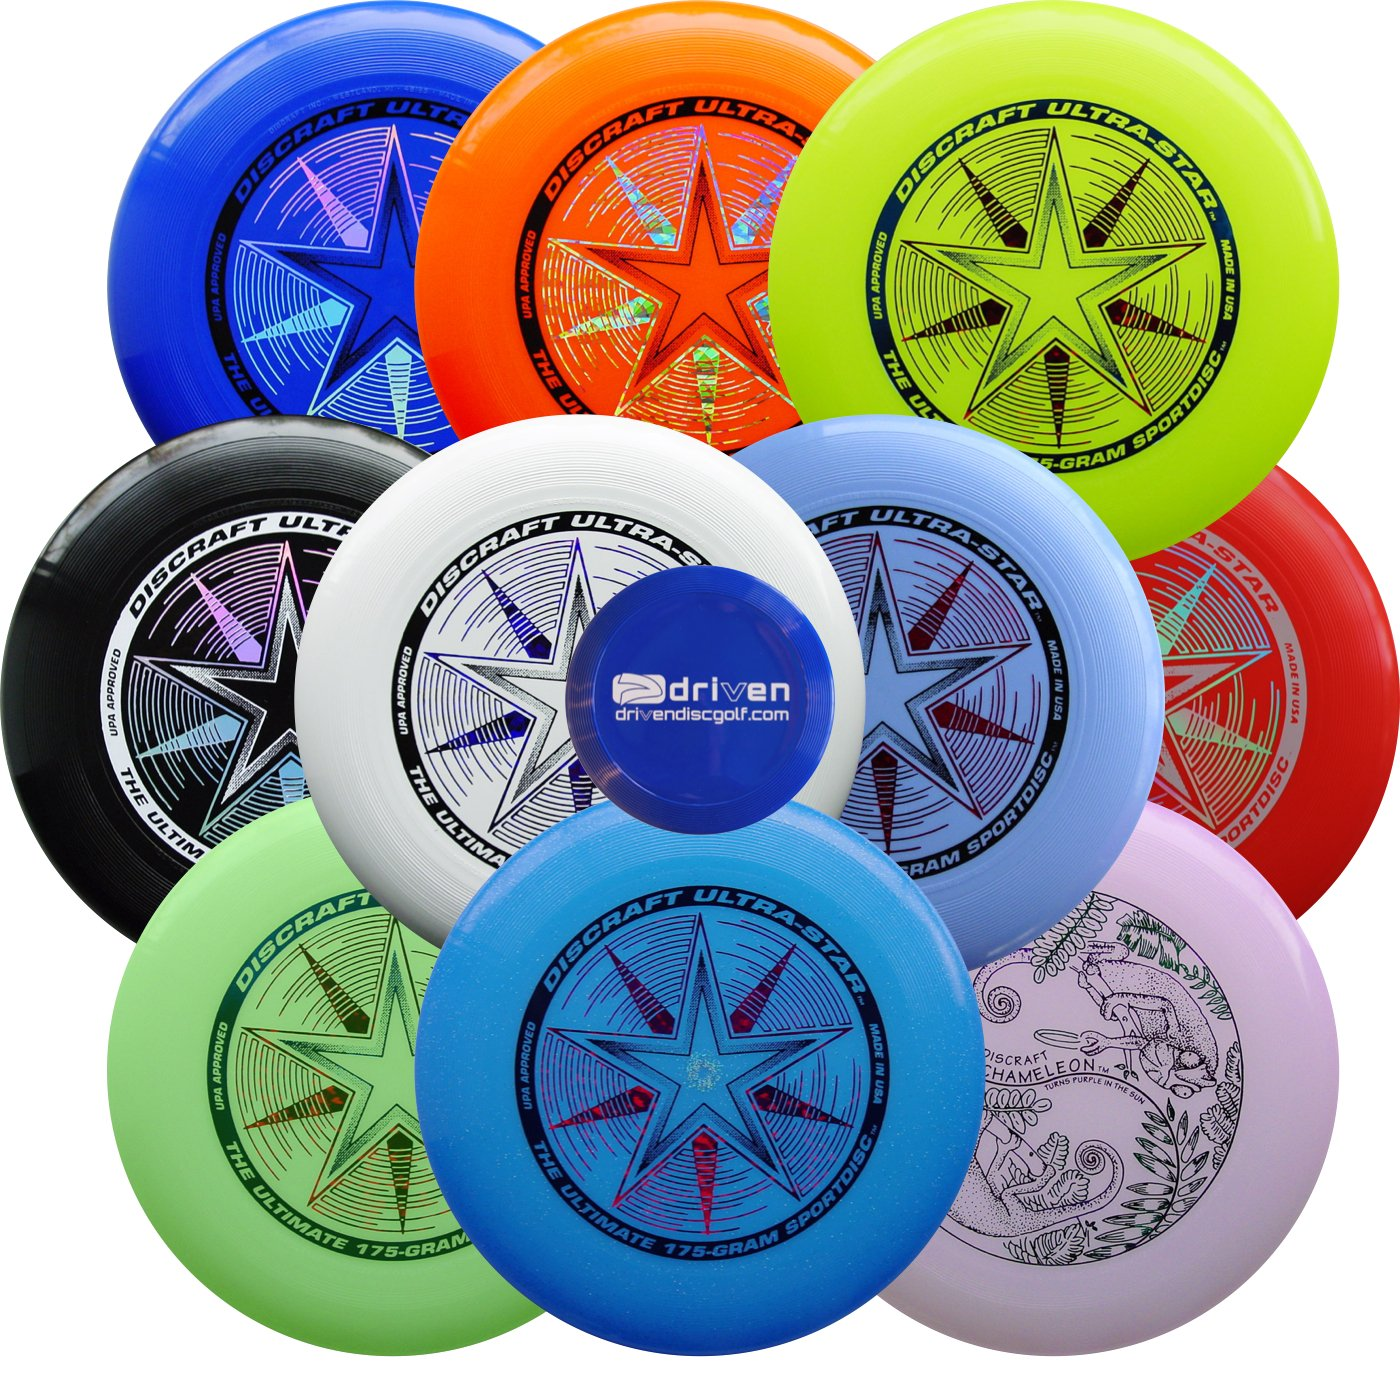 Ultimate Bundle - 10 Discraft Ultra Star Ultimate Sport Discs + Mini Disc by Driven Ultimate Discs